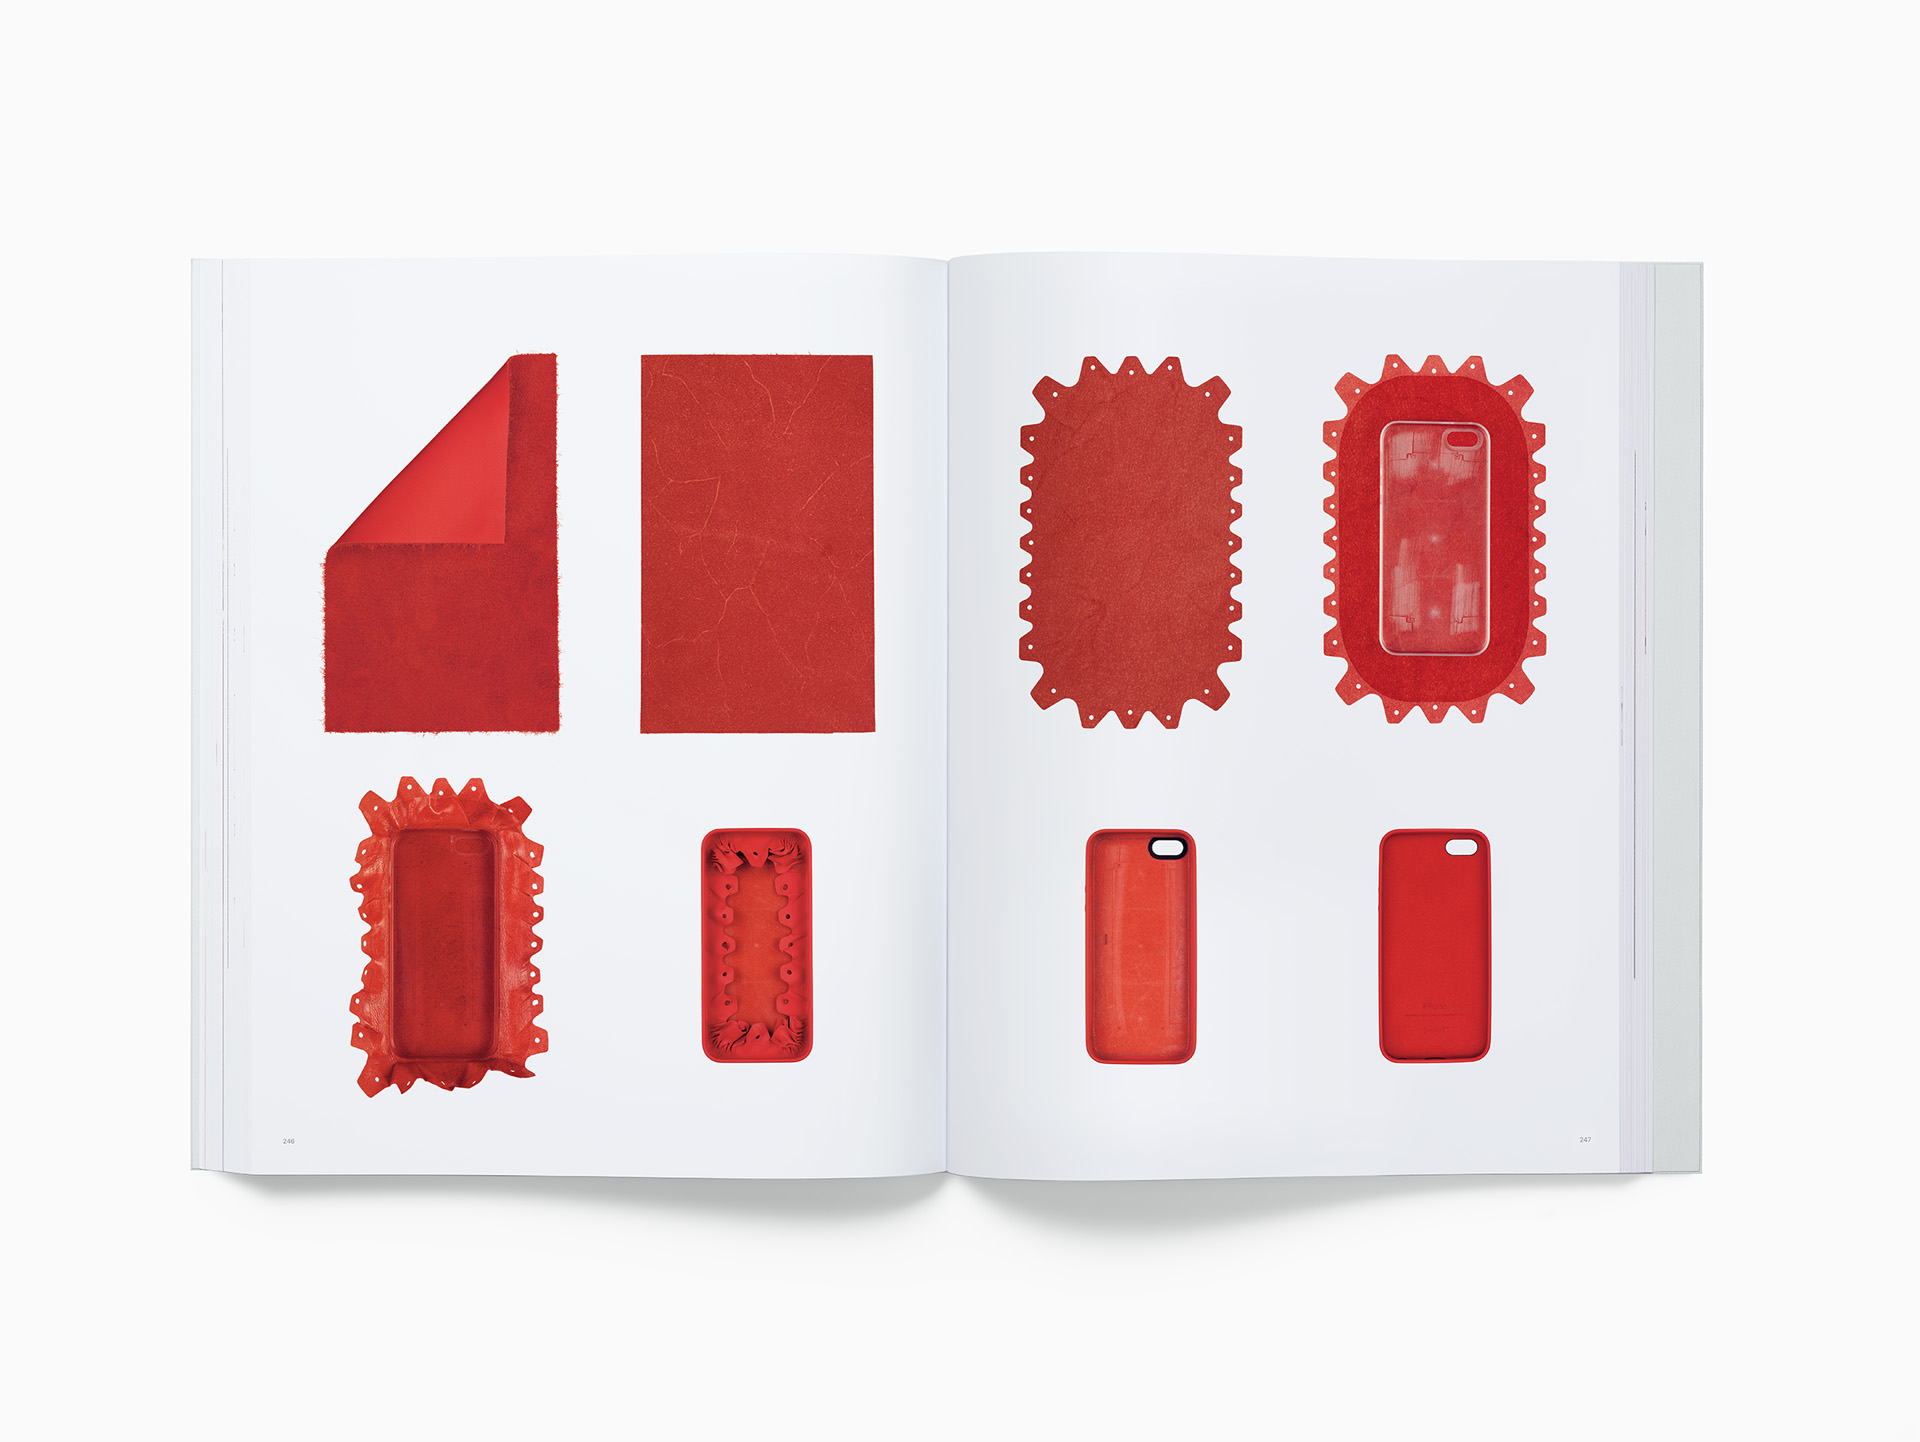 Spreads which offer an insight into apple product design